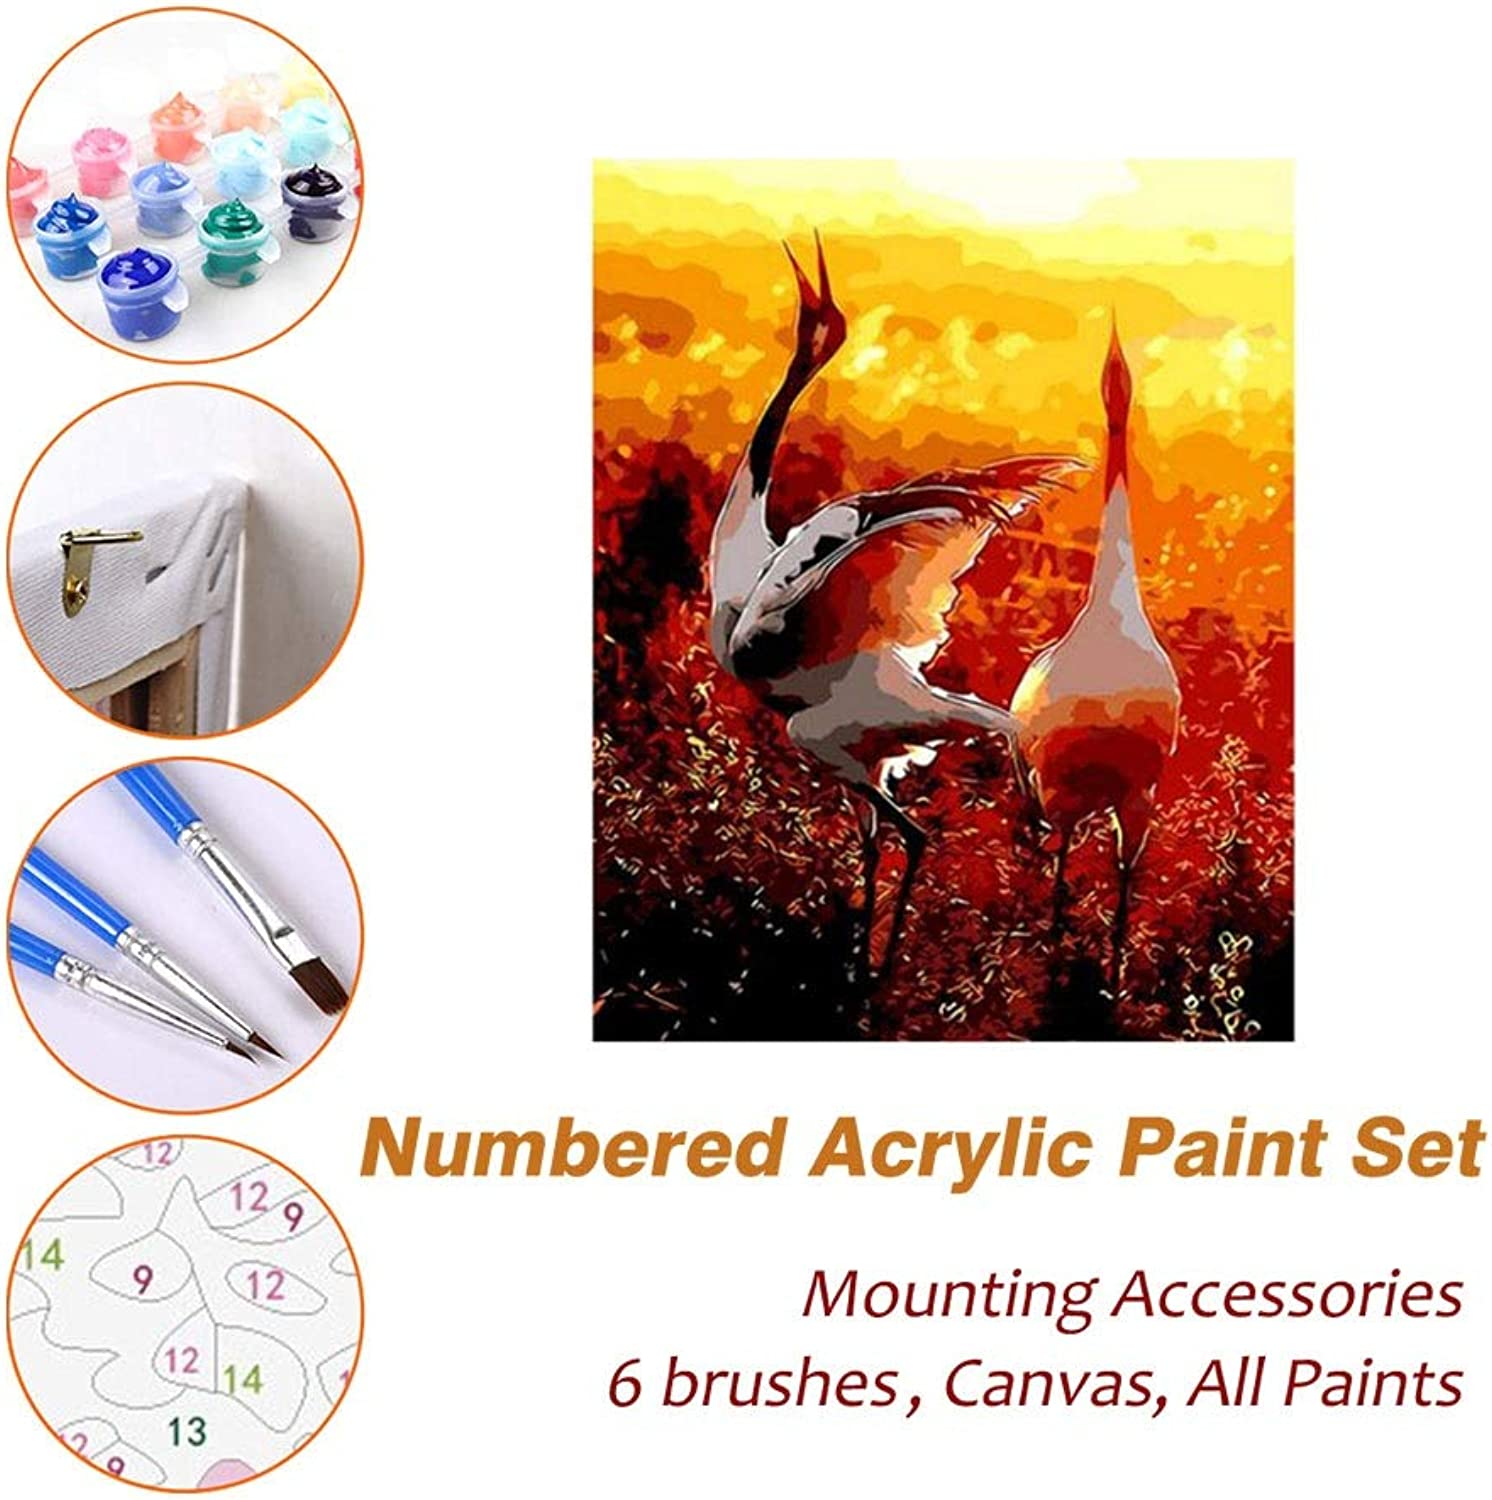 Puzzle House Paint Max Acrylic Oil Painting Paint By Numbers Kits Sets with Frame For Kids Adults Beginner Artist, Crane Sunset DIY Wall Art Picture Photography Brush Supplies 610